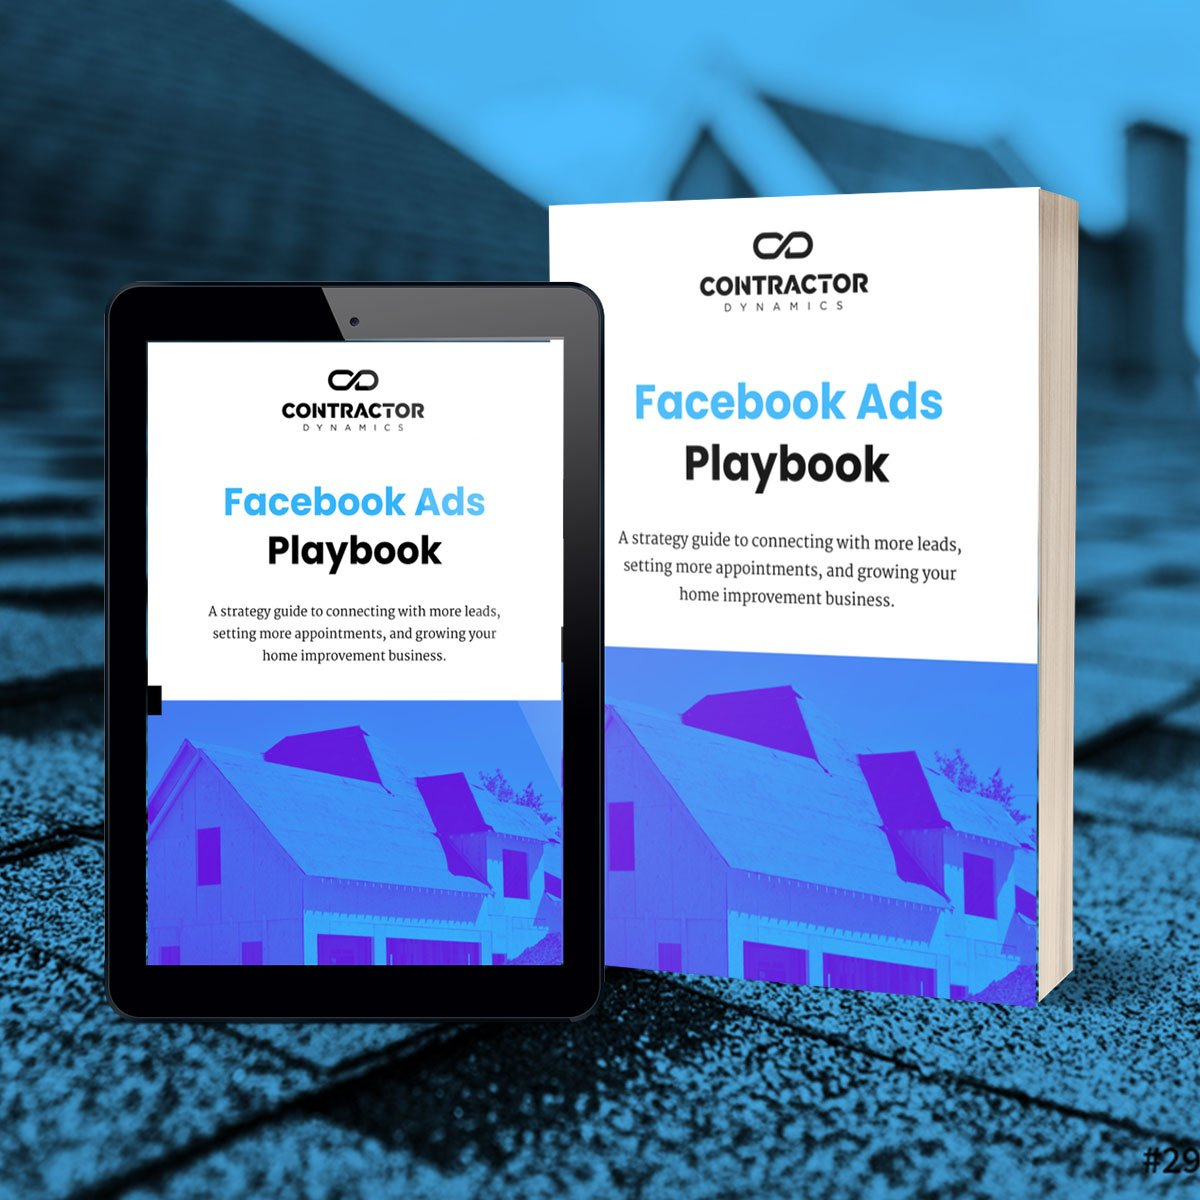 Facebook Ads: The Playbook